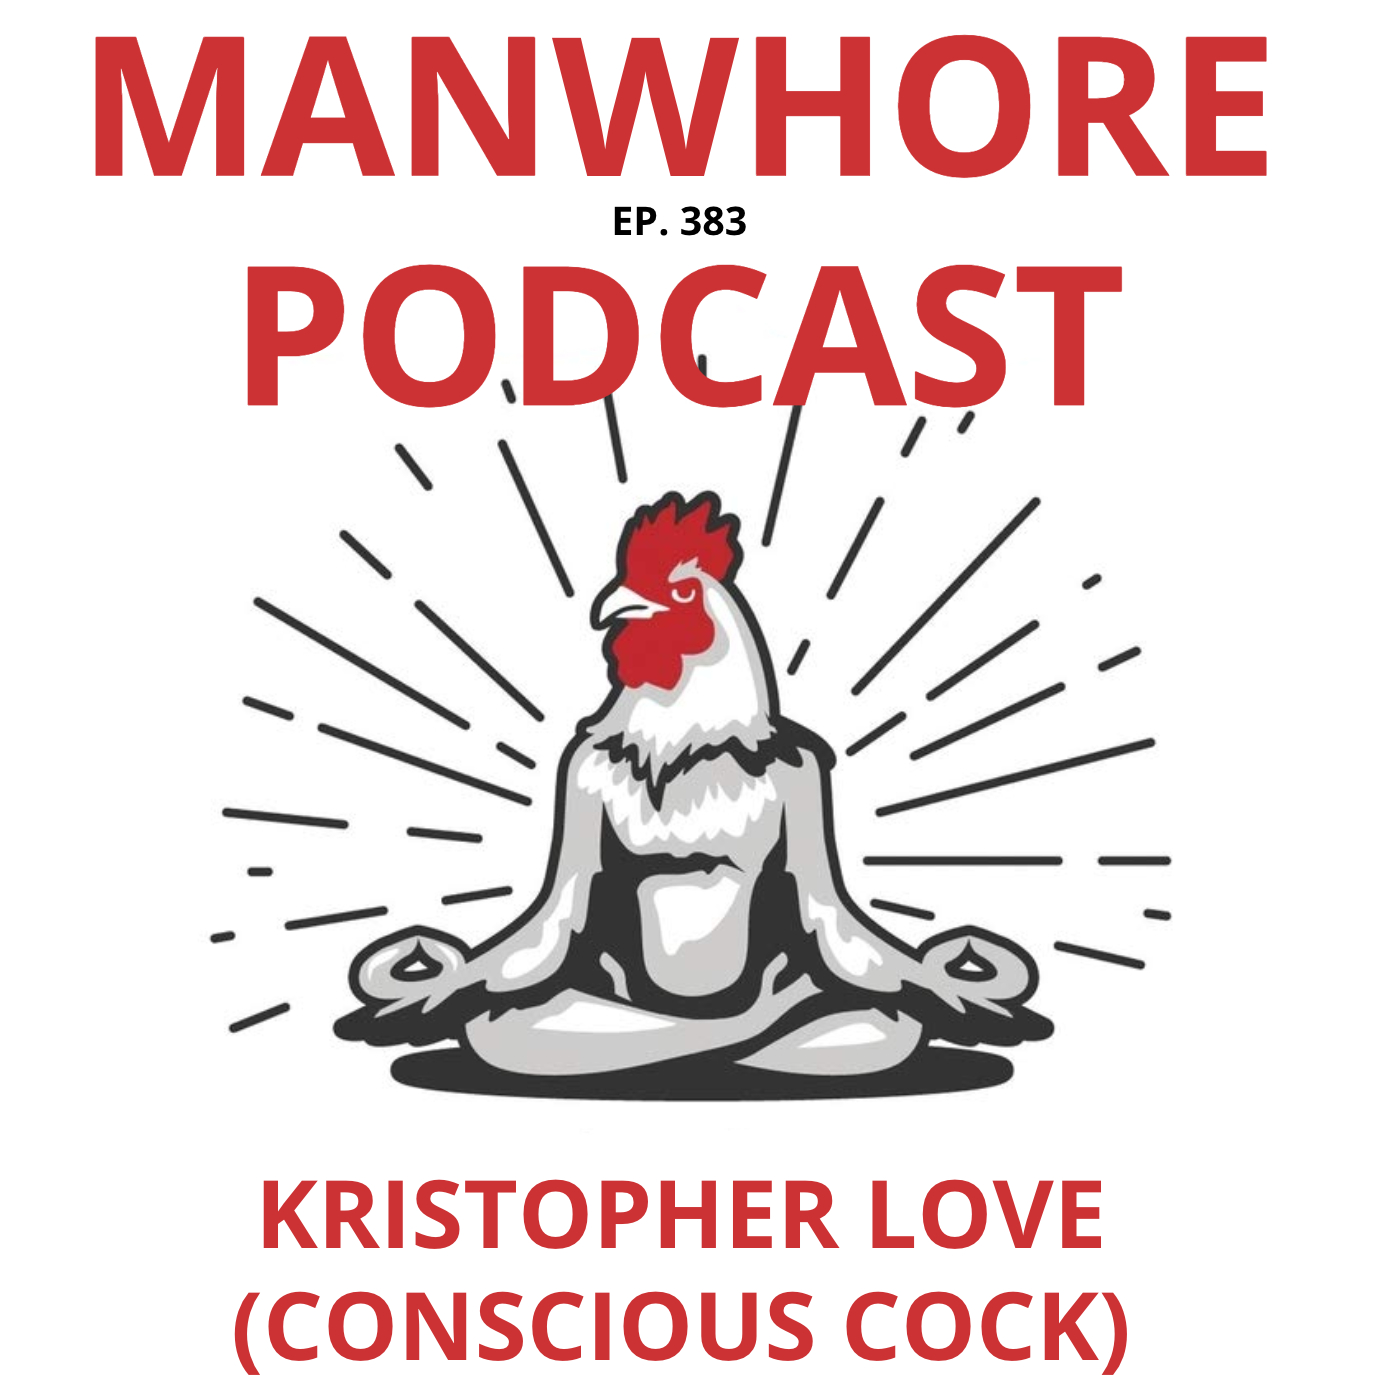 The Manwhore Podcast: A Sex-Positive Quest - Ep. 383: Positive Masculinity, Ravishment Fantasies, and Pleasure with Kristopher Lovestone